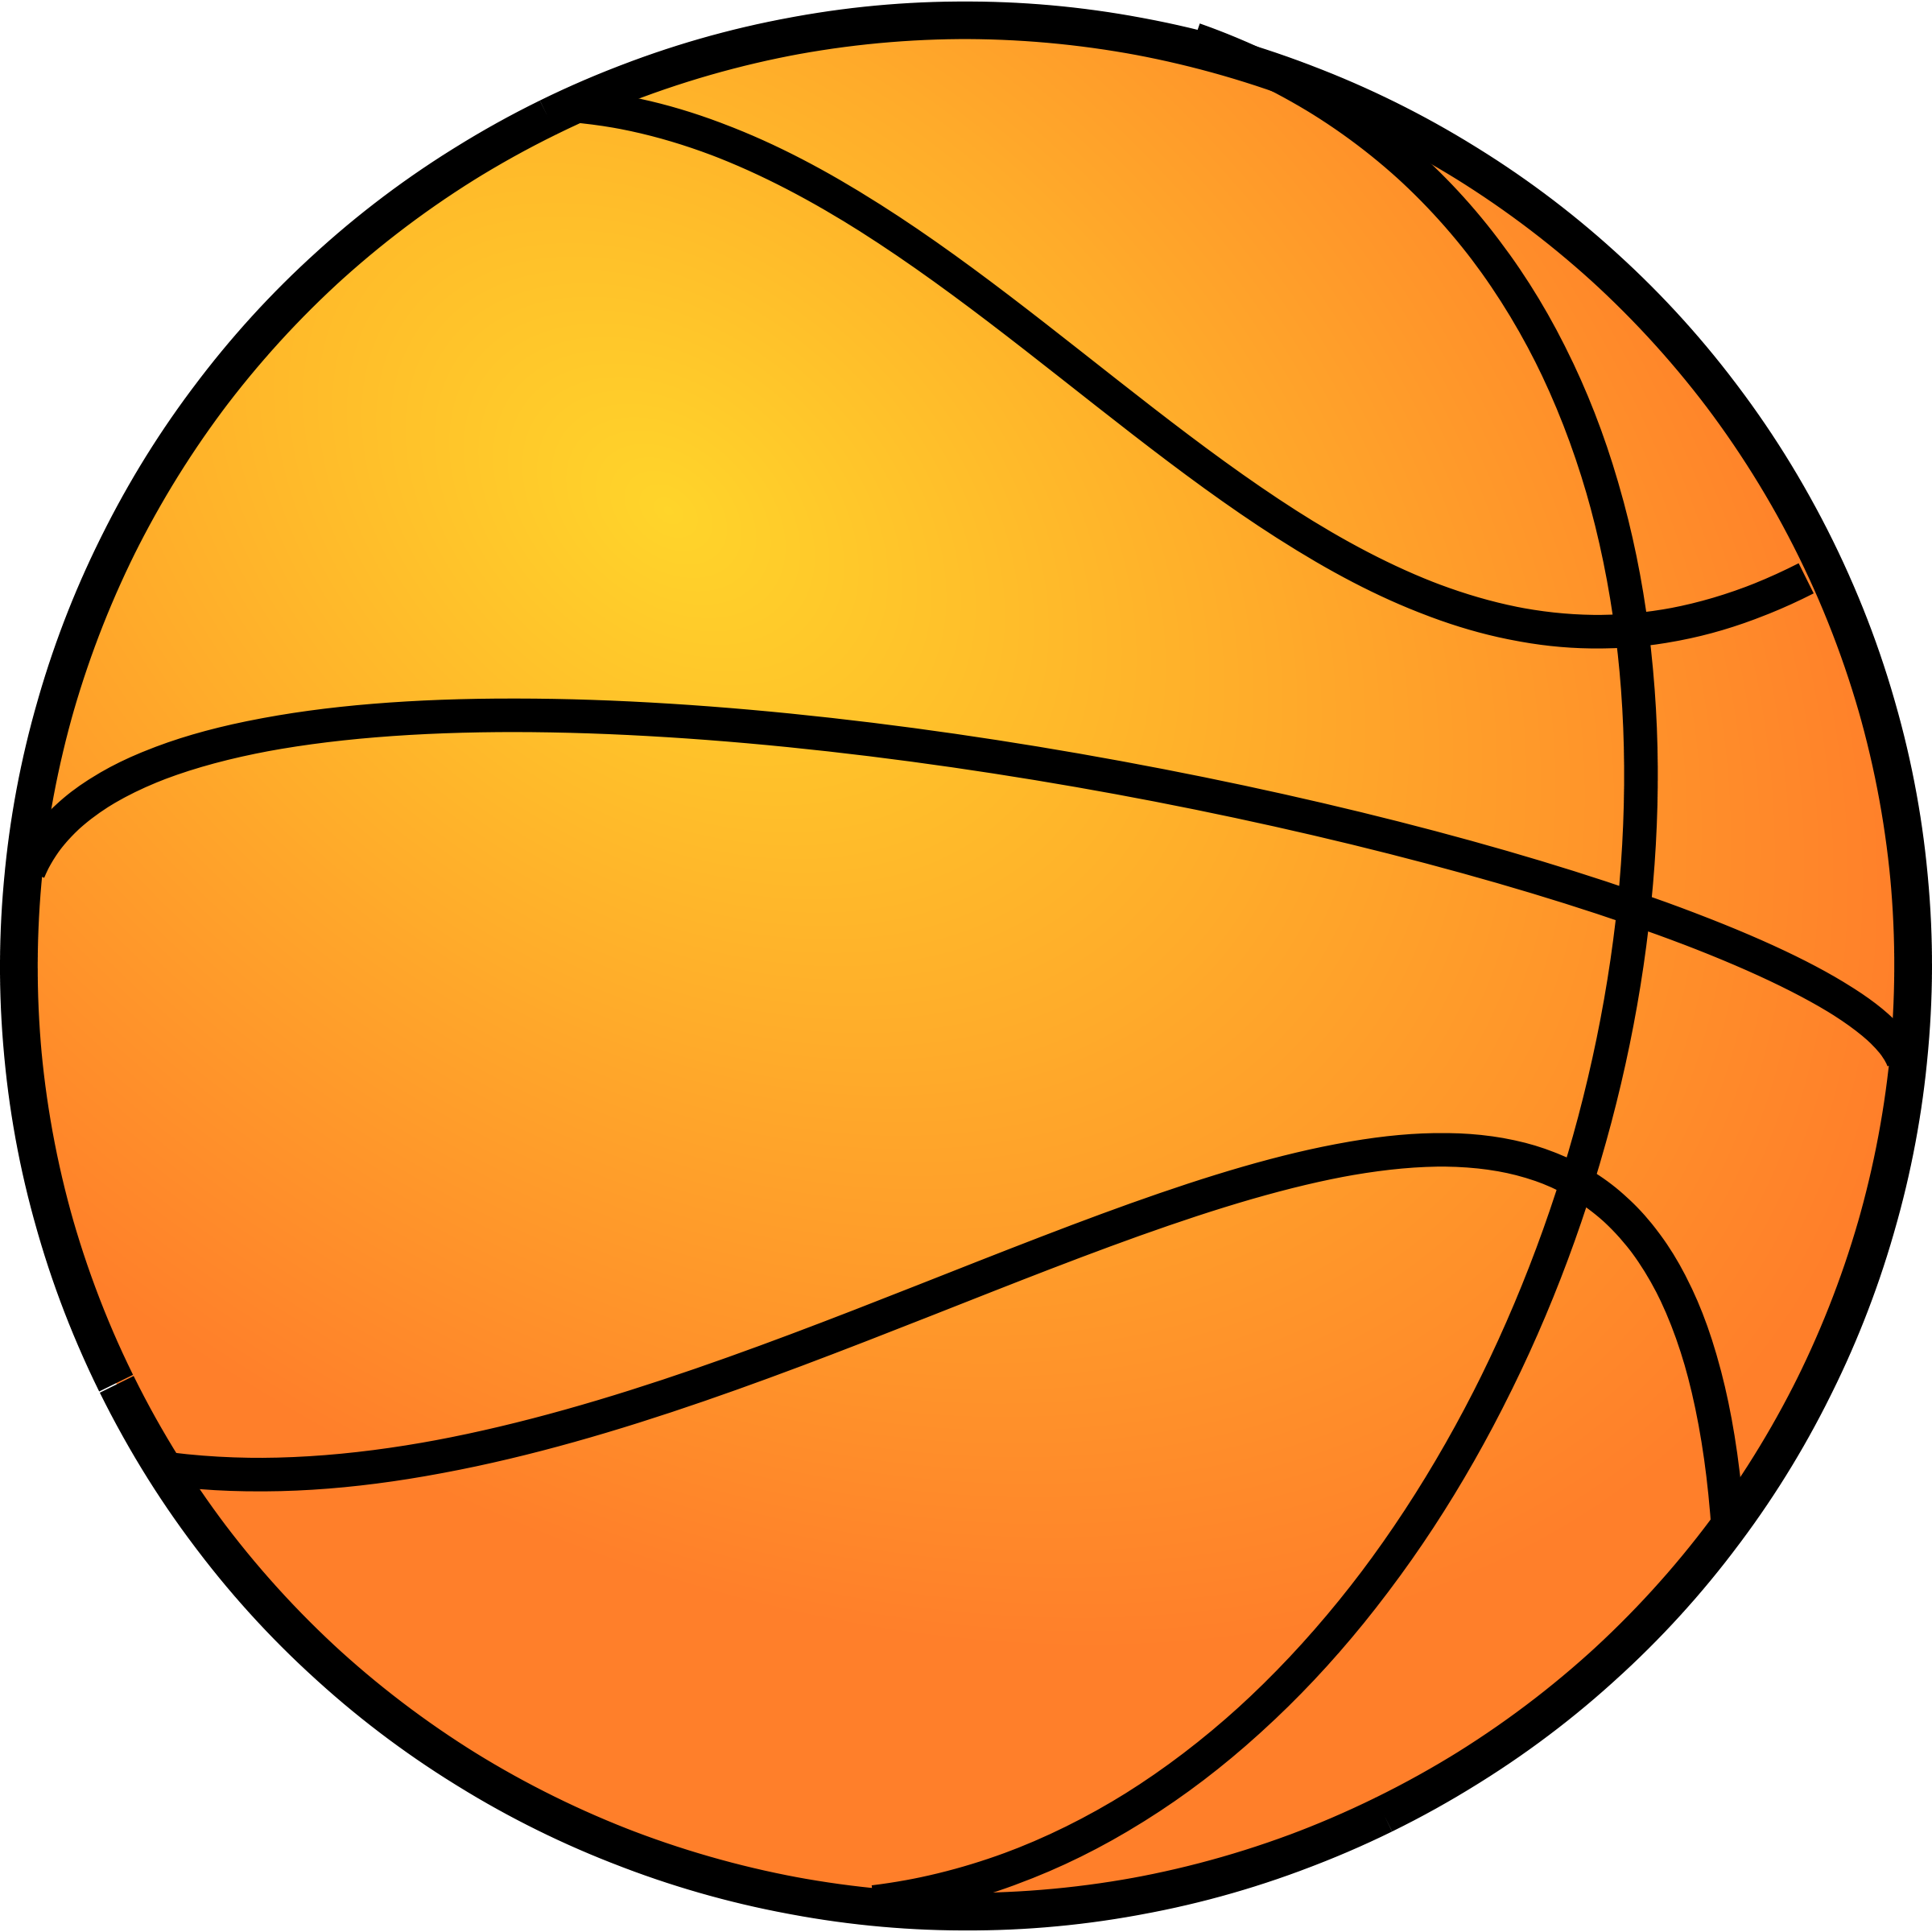 Net clipart basket ball. Basketball panda free images